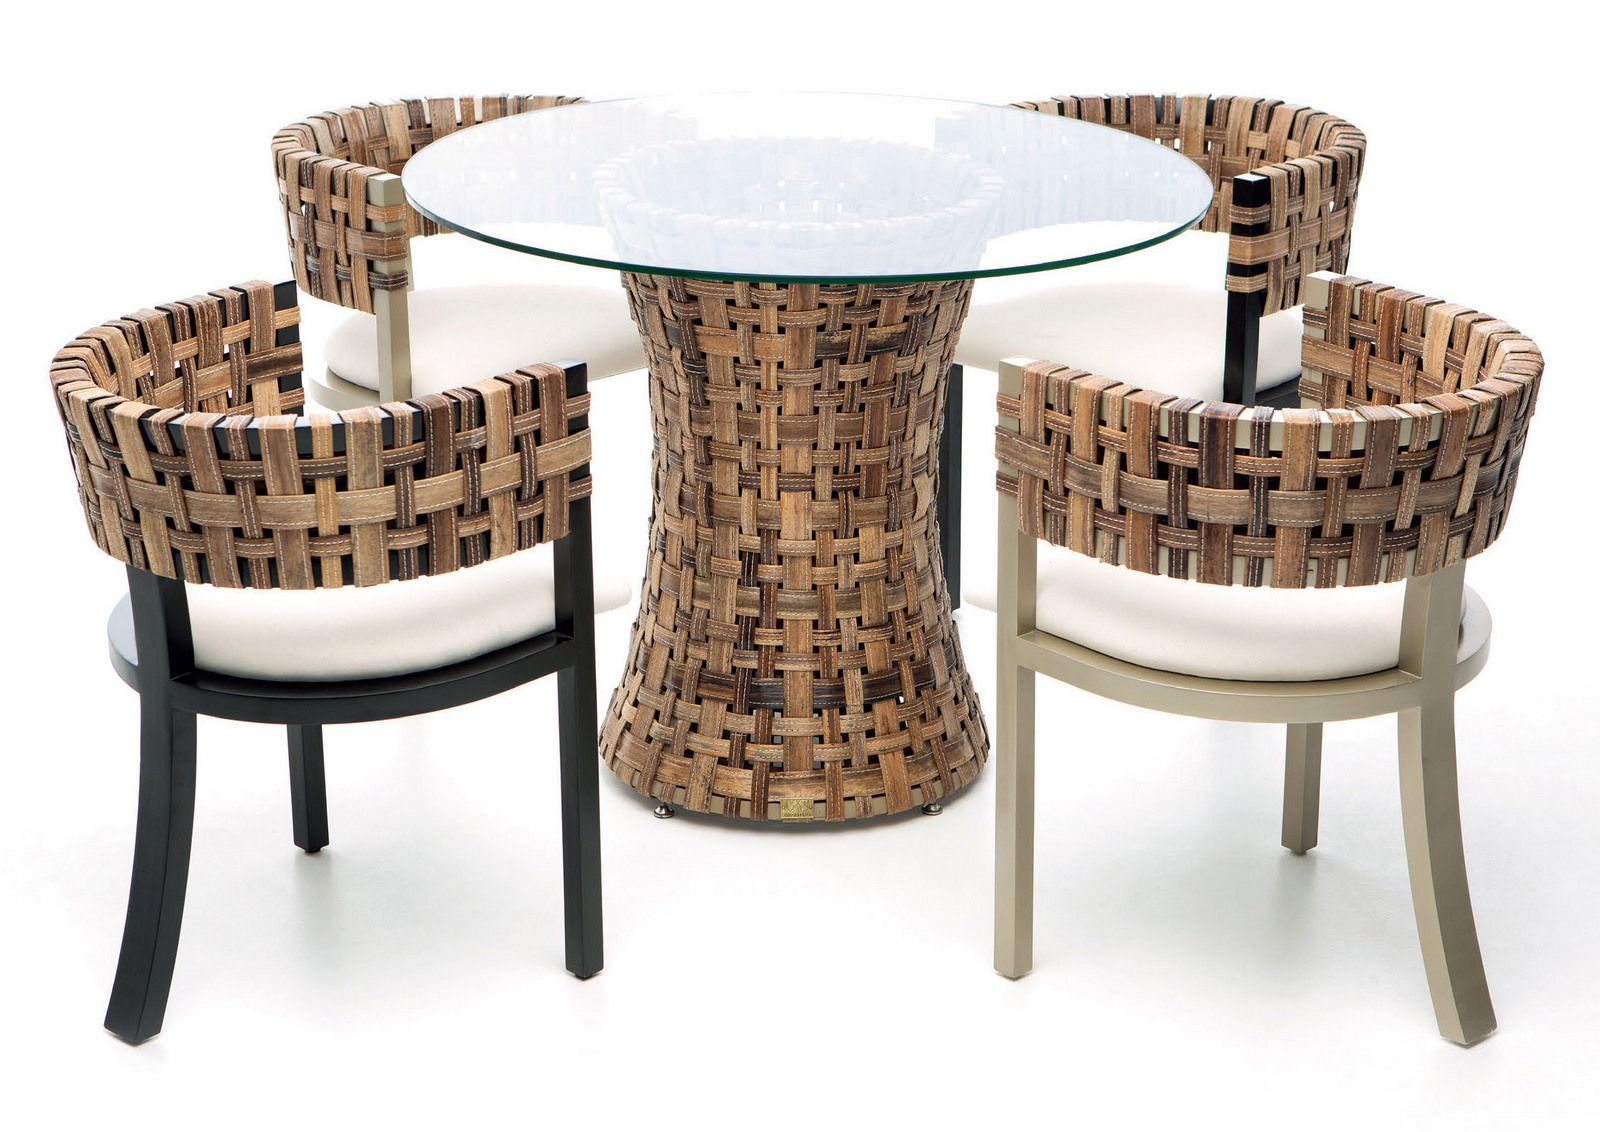 Tables Gallery Categories Vito Selma Dining Table Bases Table Dining Table [ 1132 x 1600 Pixel ]